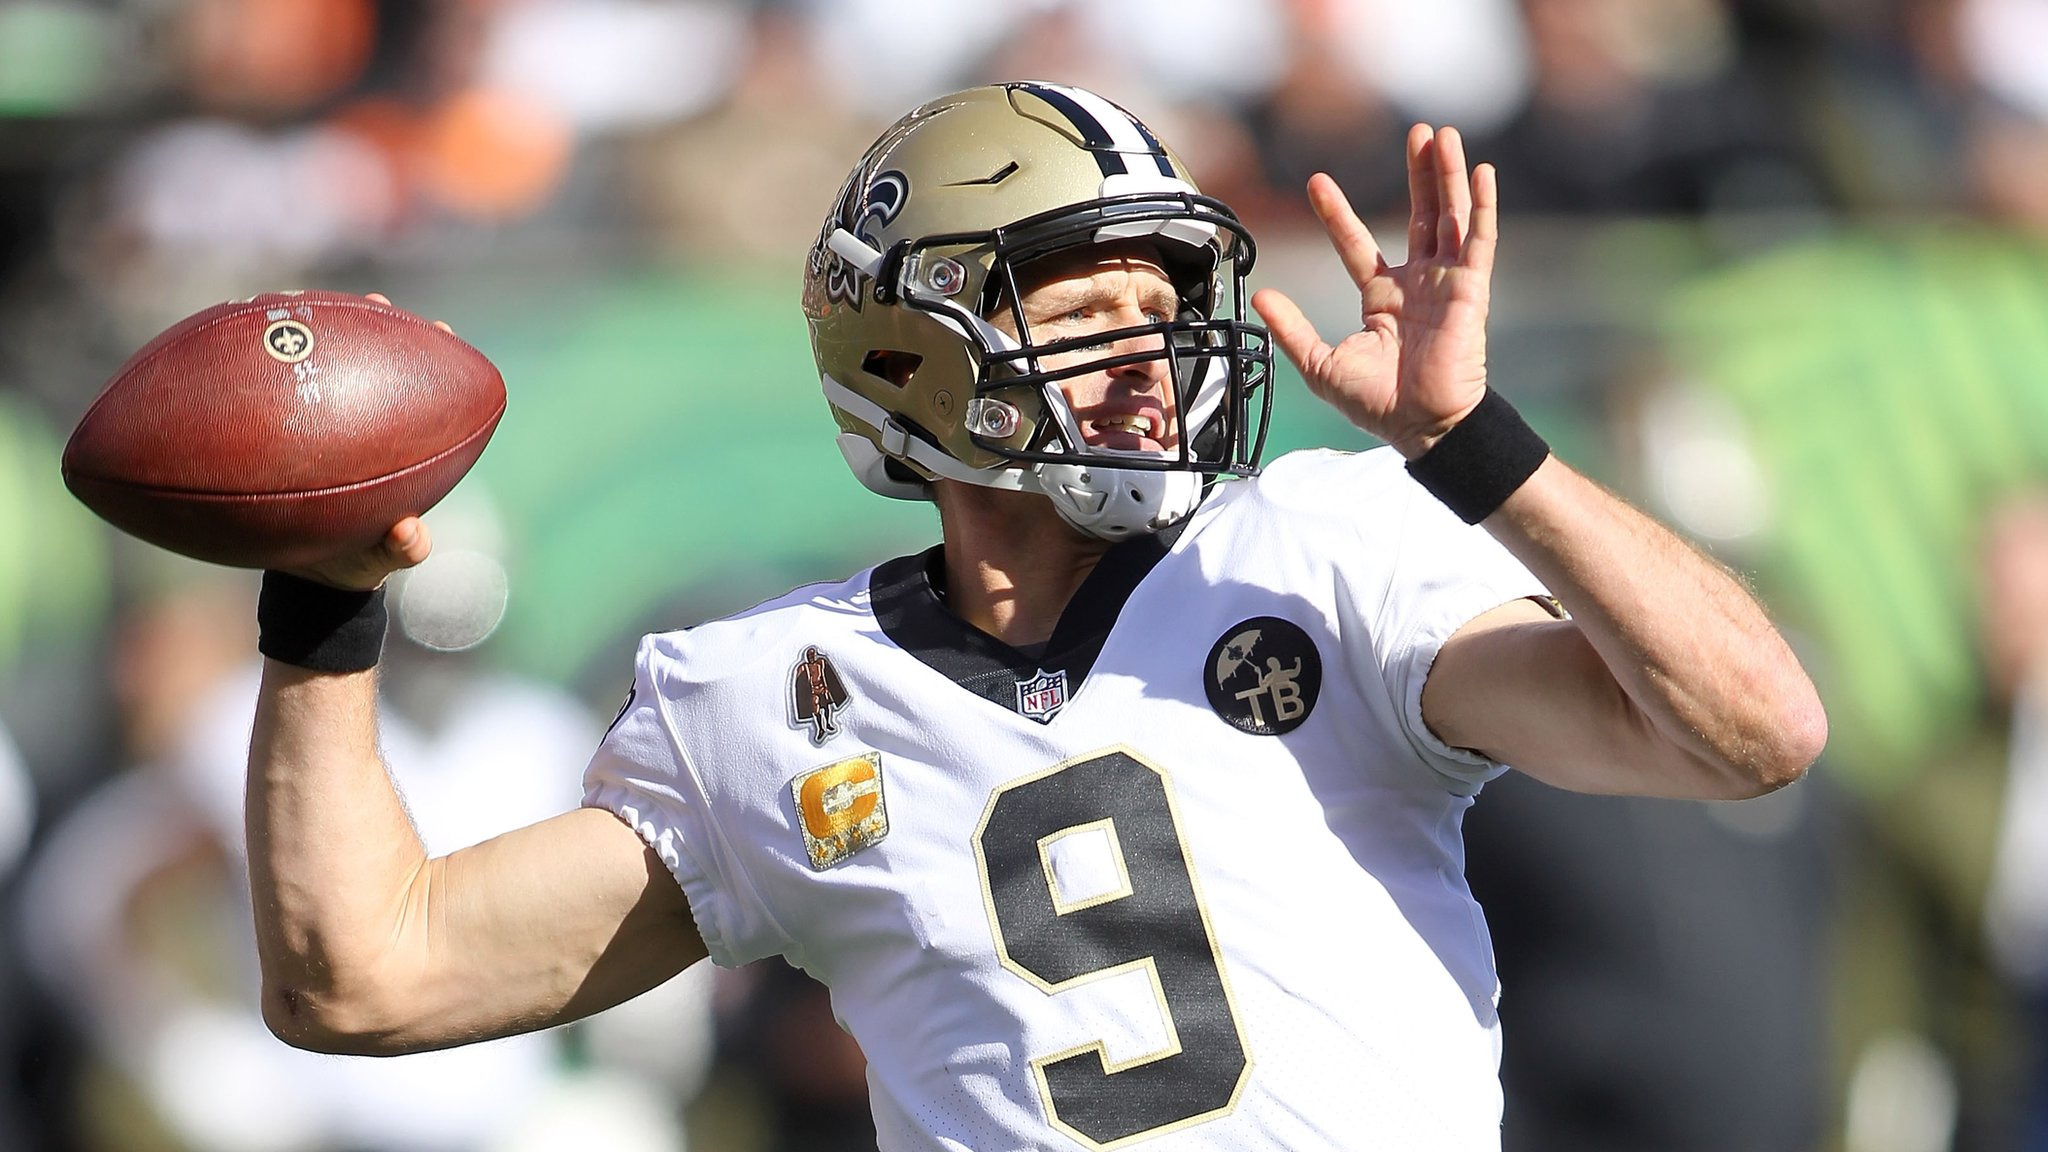 NFL week 10 review: Quarterback Drew Brees stars as New Orleans Saints make it eight wins in a row